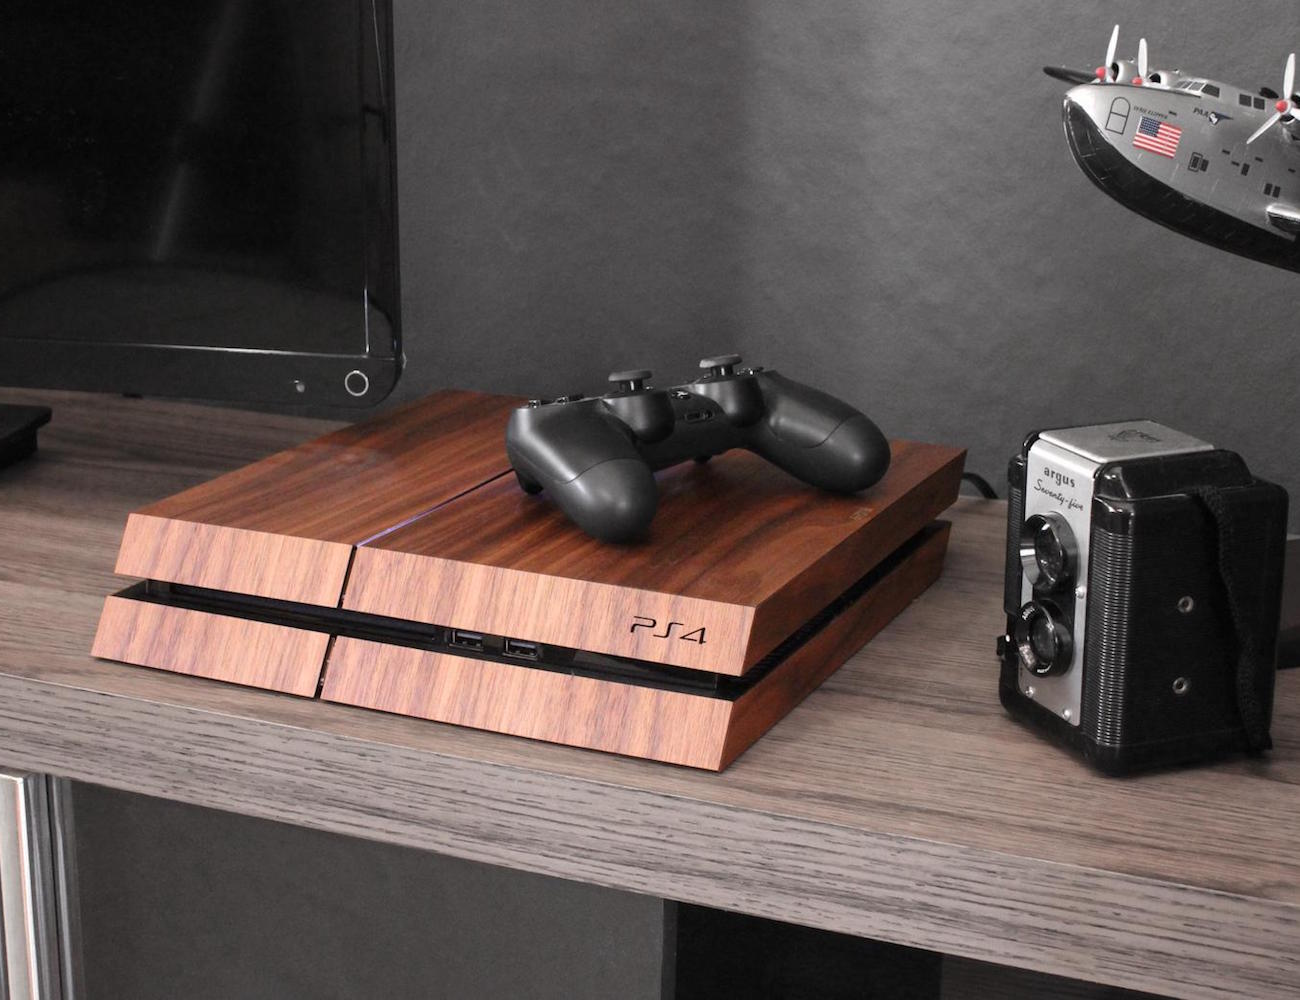 10 Must-have gaming accessories that will help you level up - Real Wood Cover 03